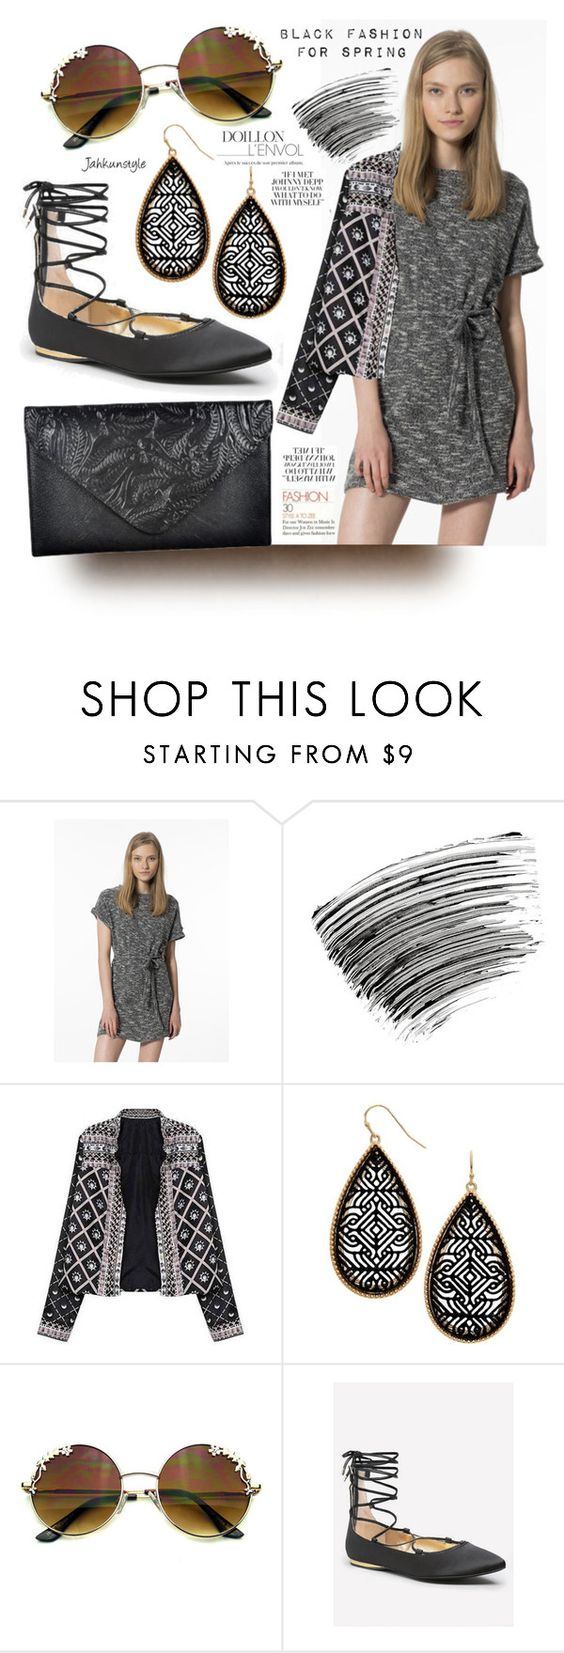 """""""Black Fashion"""" by jahkun ❤ liked on Polyvore featuring Bobbi Brown Cosmetics, Bebe and SpringStyle"""